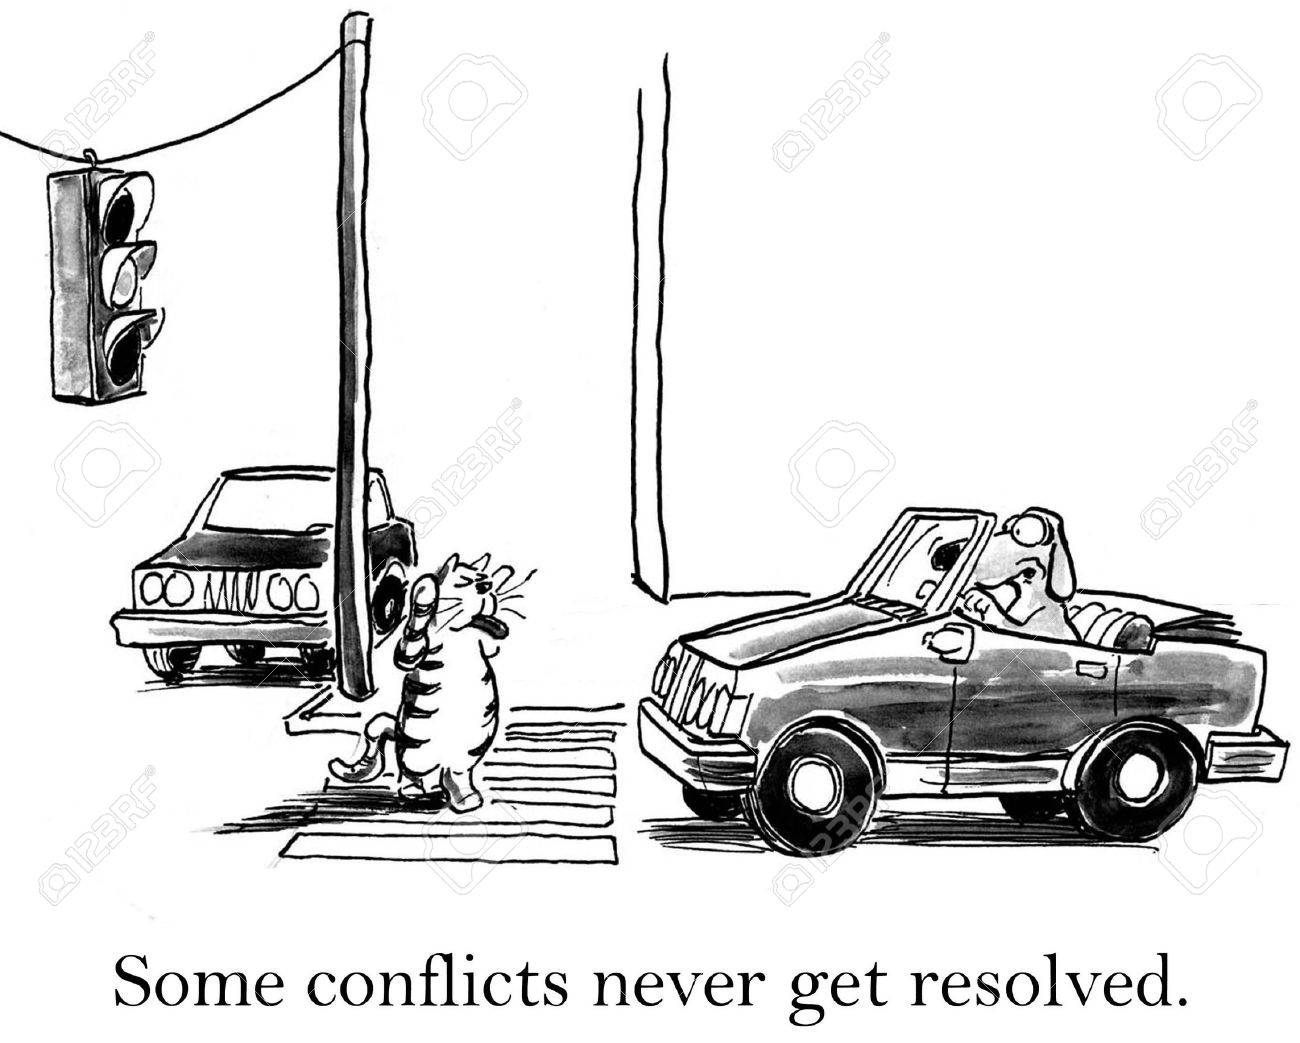 Some conflicts never get resolved between cat and dog. Stock Photo - 16859971